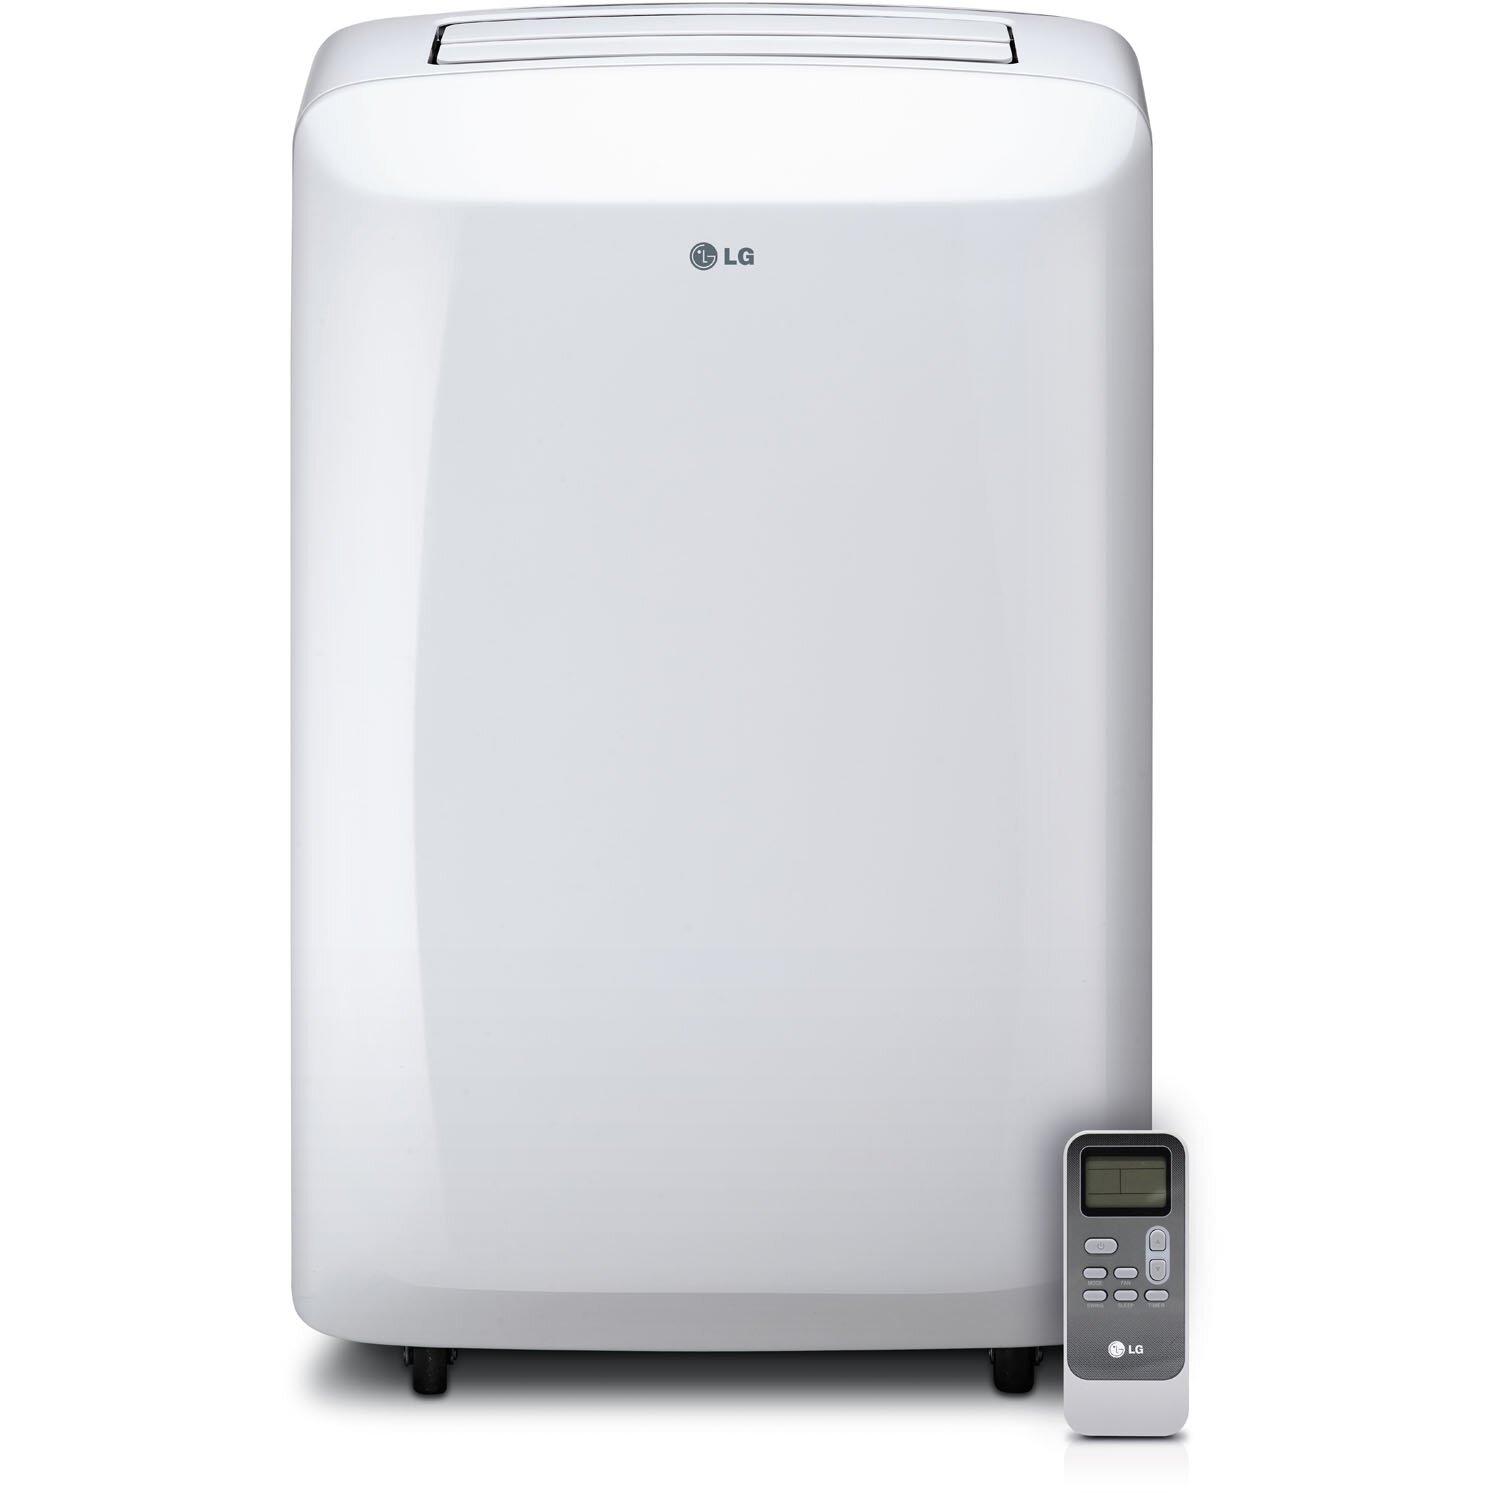 10 000 BTU Portable Air Conditioner with Remote Control Wayfair #545648